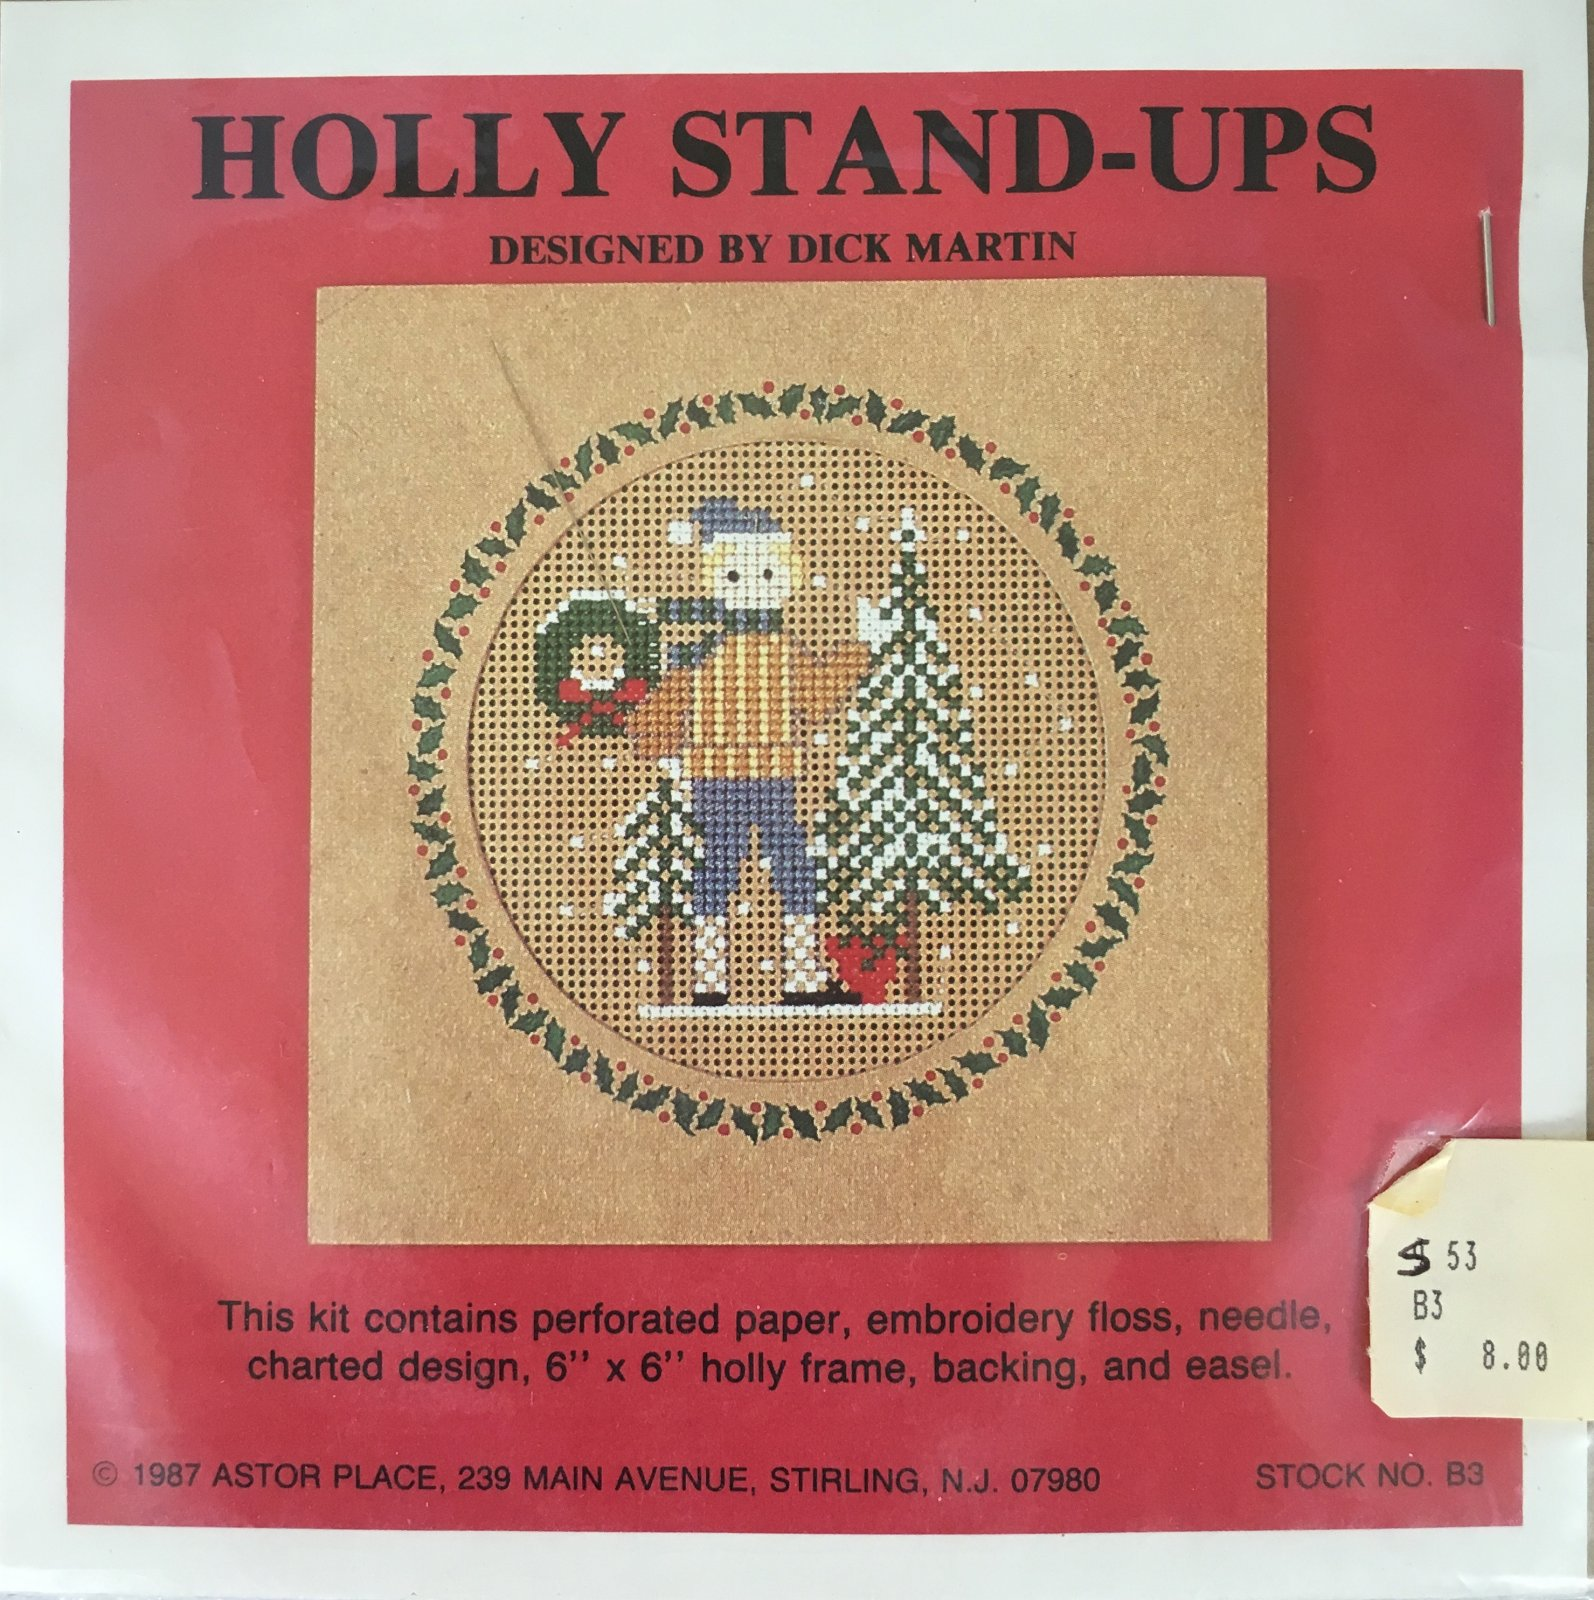 Astor Place: Holly Stand-Ups Boy Kit B3